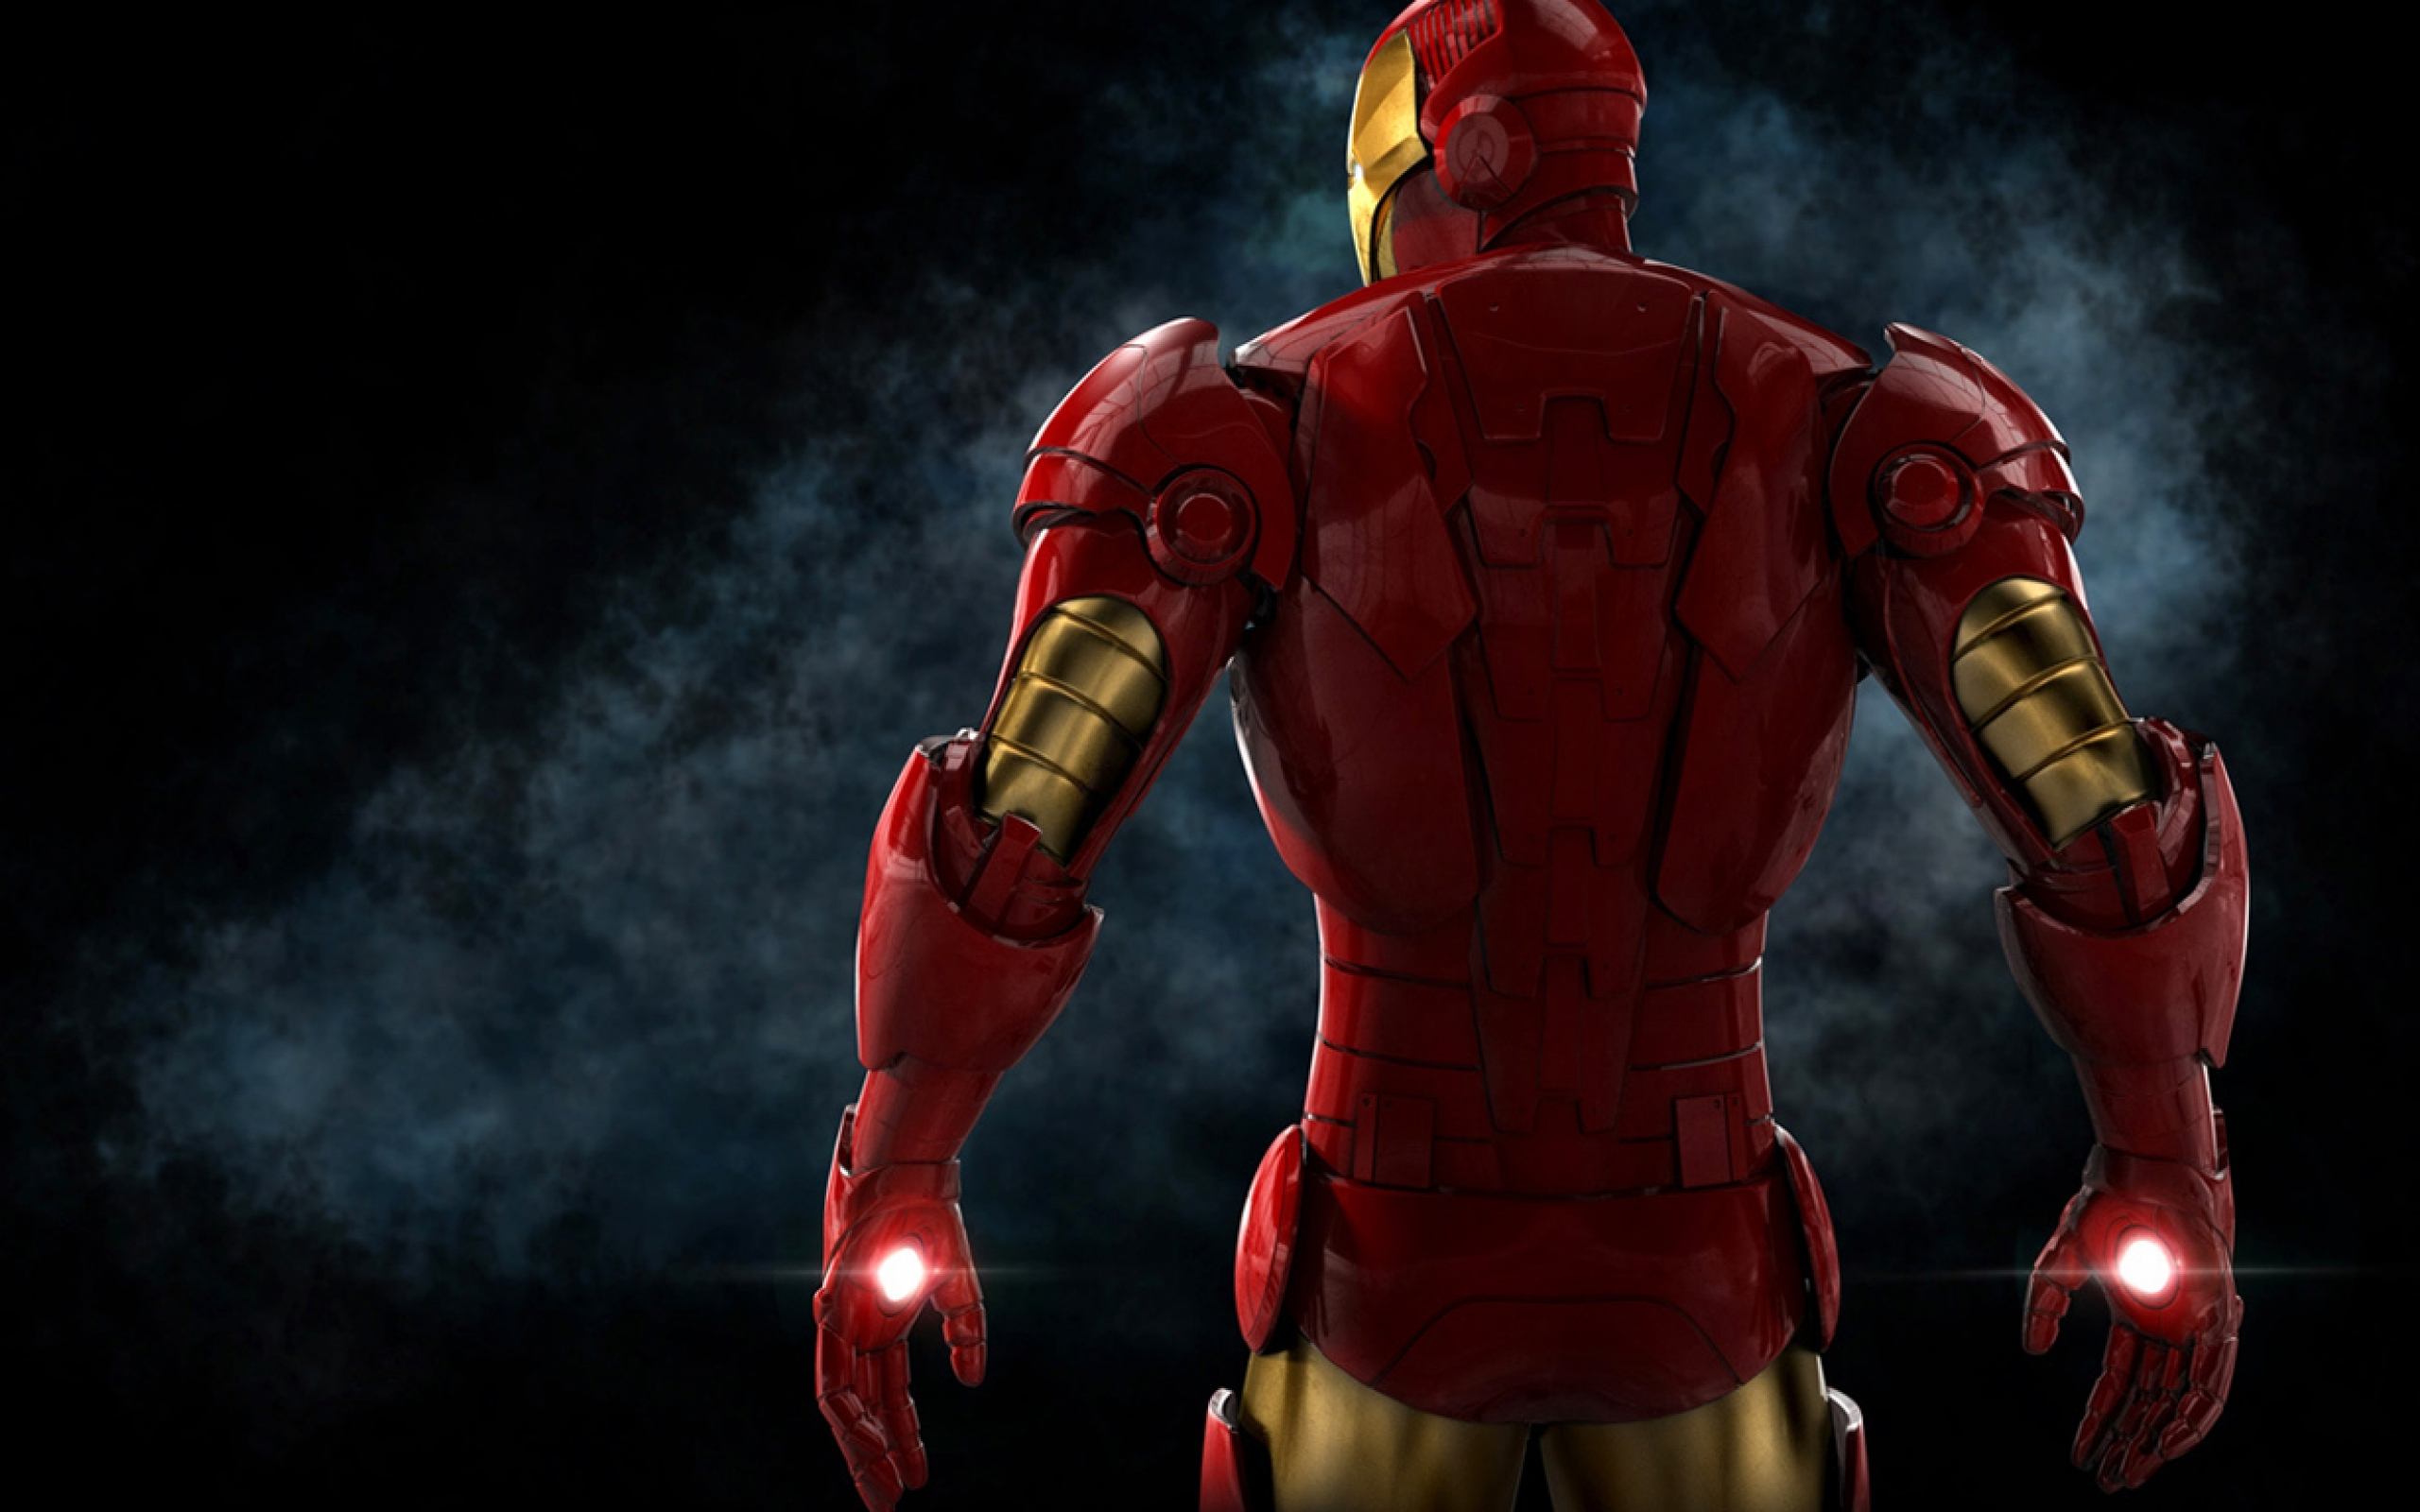 download iron man wallpaper hd 8960 2560x1600 px high definition